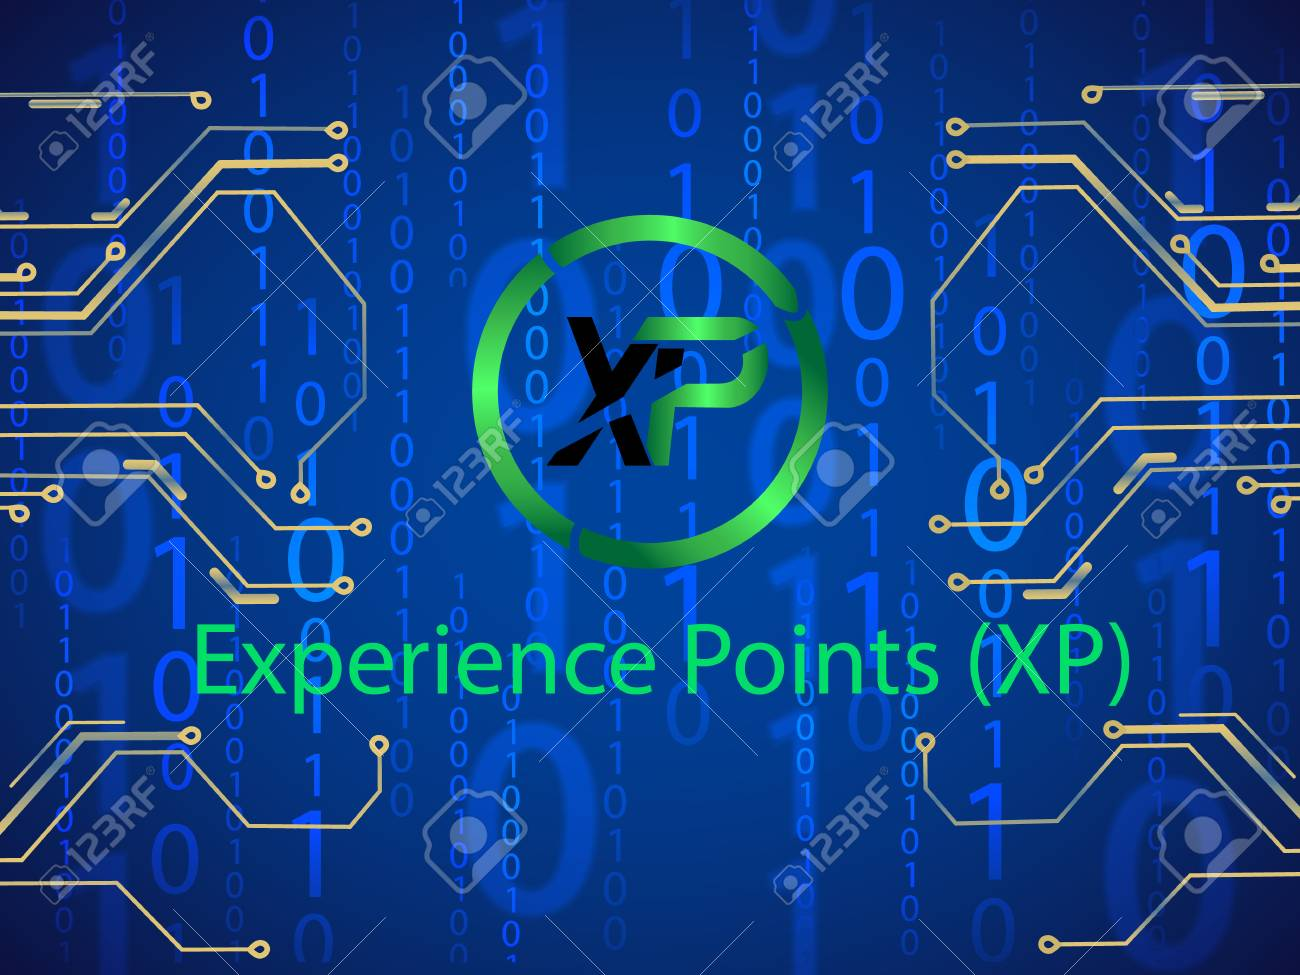 Banner, poster crypto currency symbol experience points on blue background. Stock illustration. - 124778533